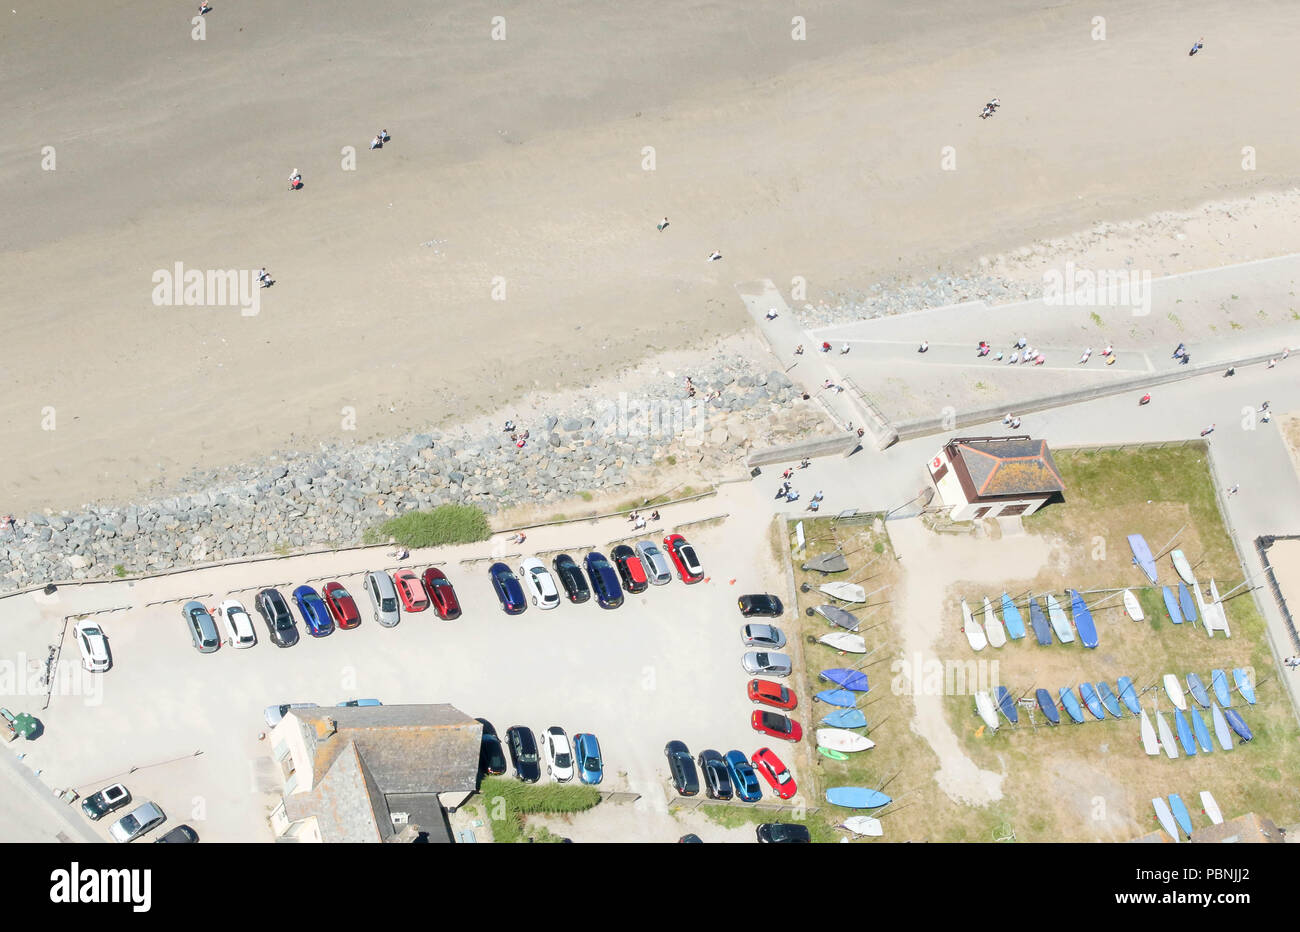 Car parked and small boats stored on beach front in Cornwall.  Birds eye view. - Stock Image